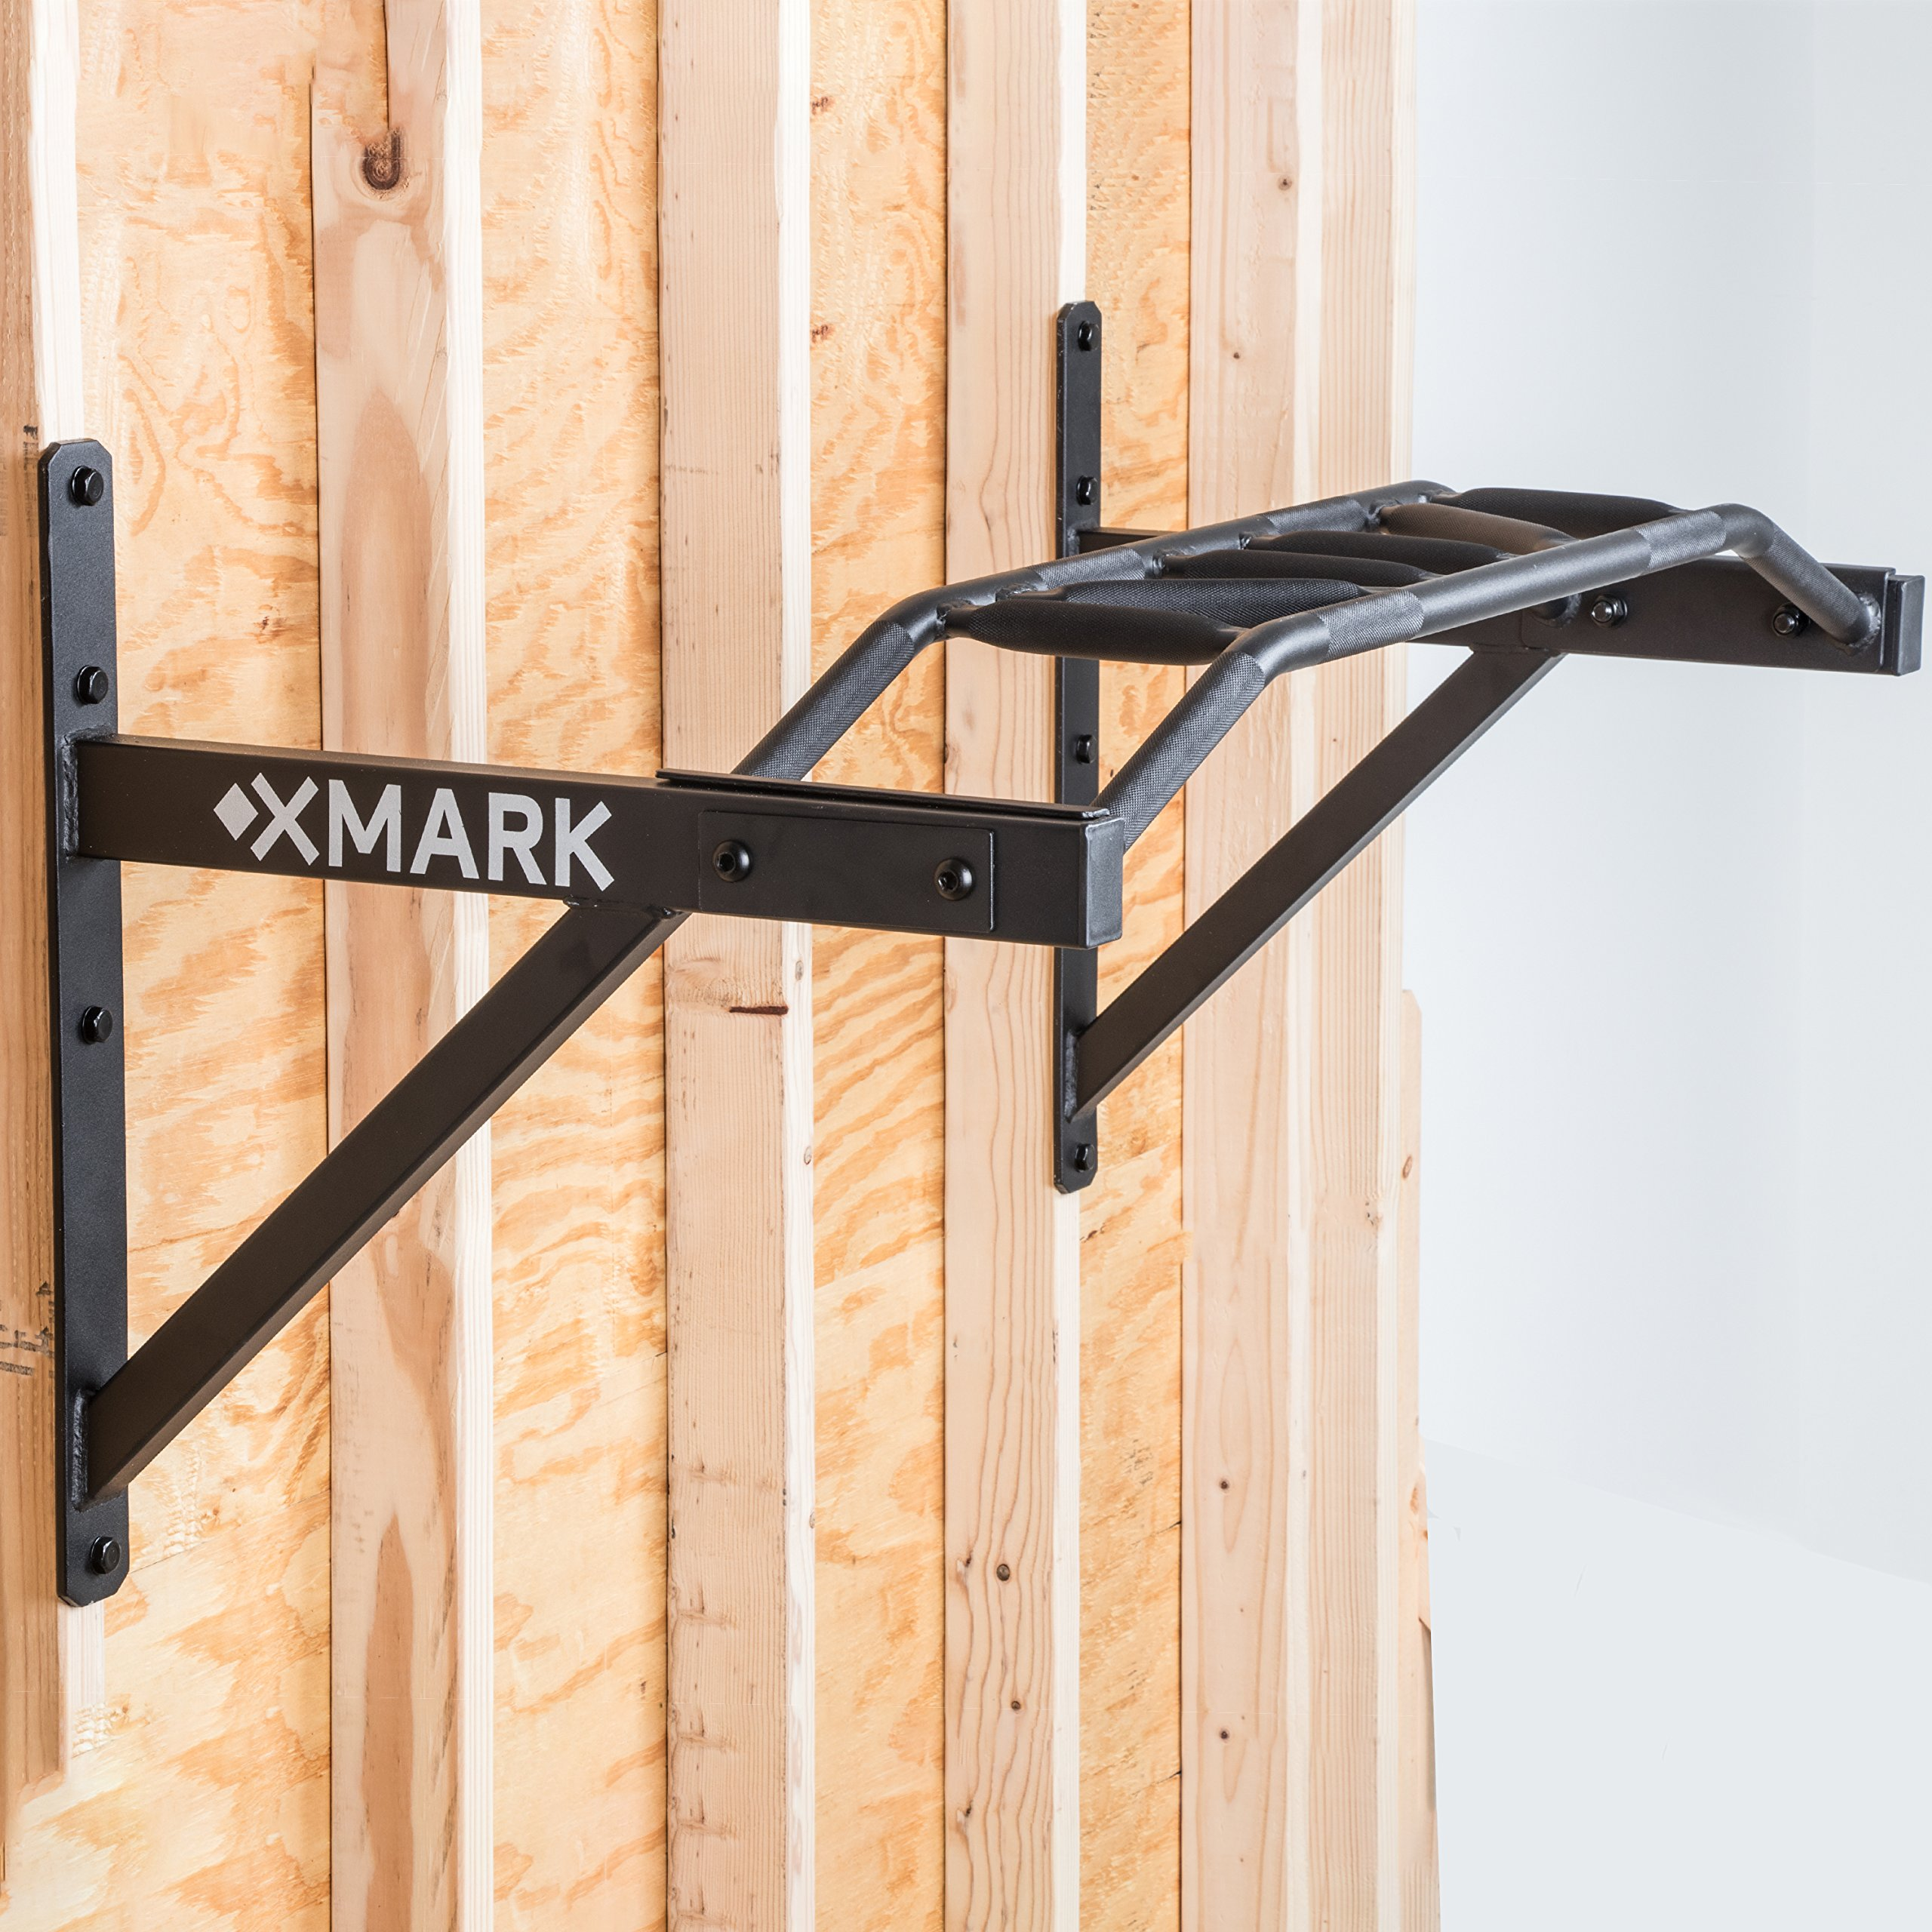 XMark Commercial Multi-Grip Wall Mounted Chin-Up Pull-Up Bar XM-9025 by XMark (Image #3)